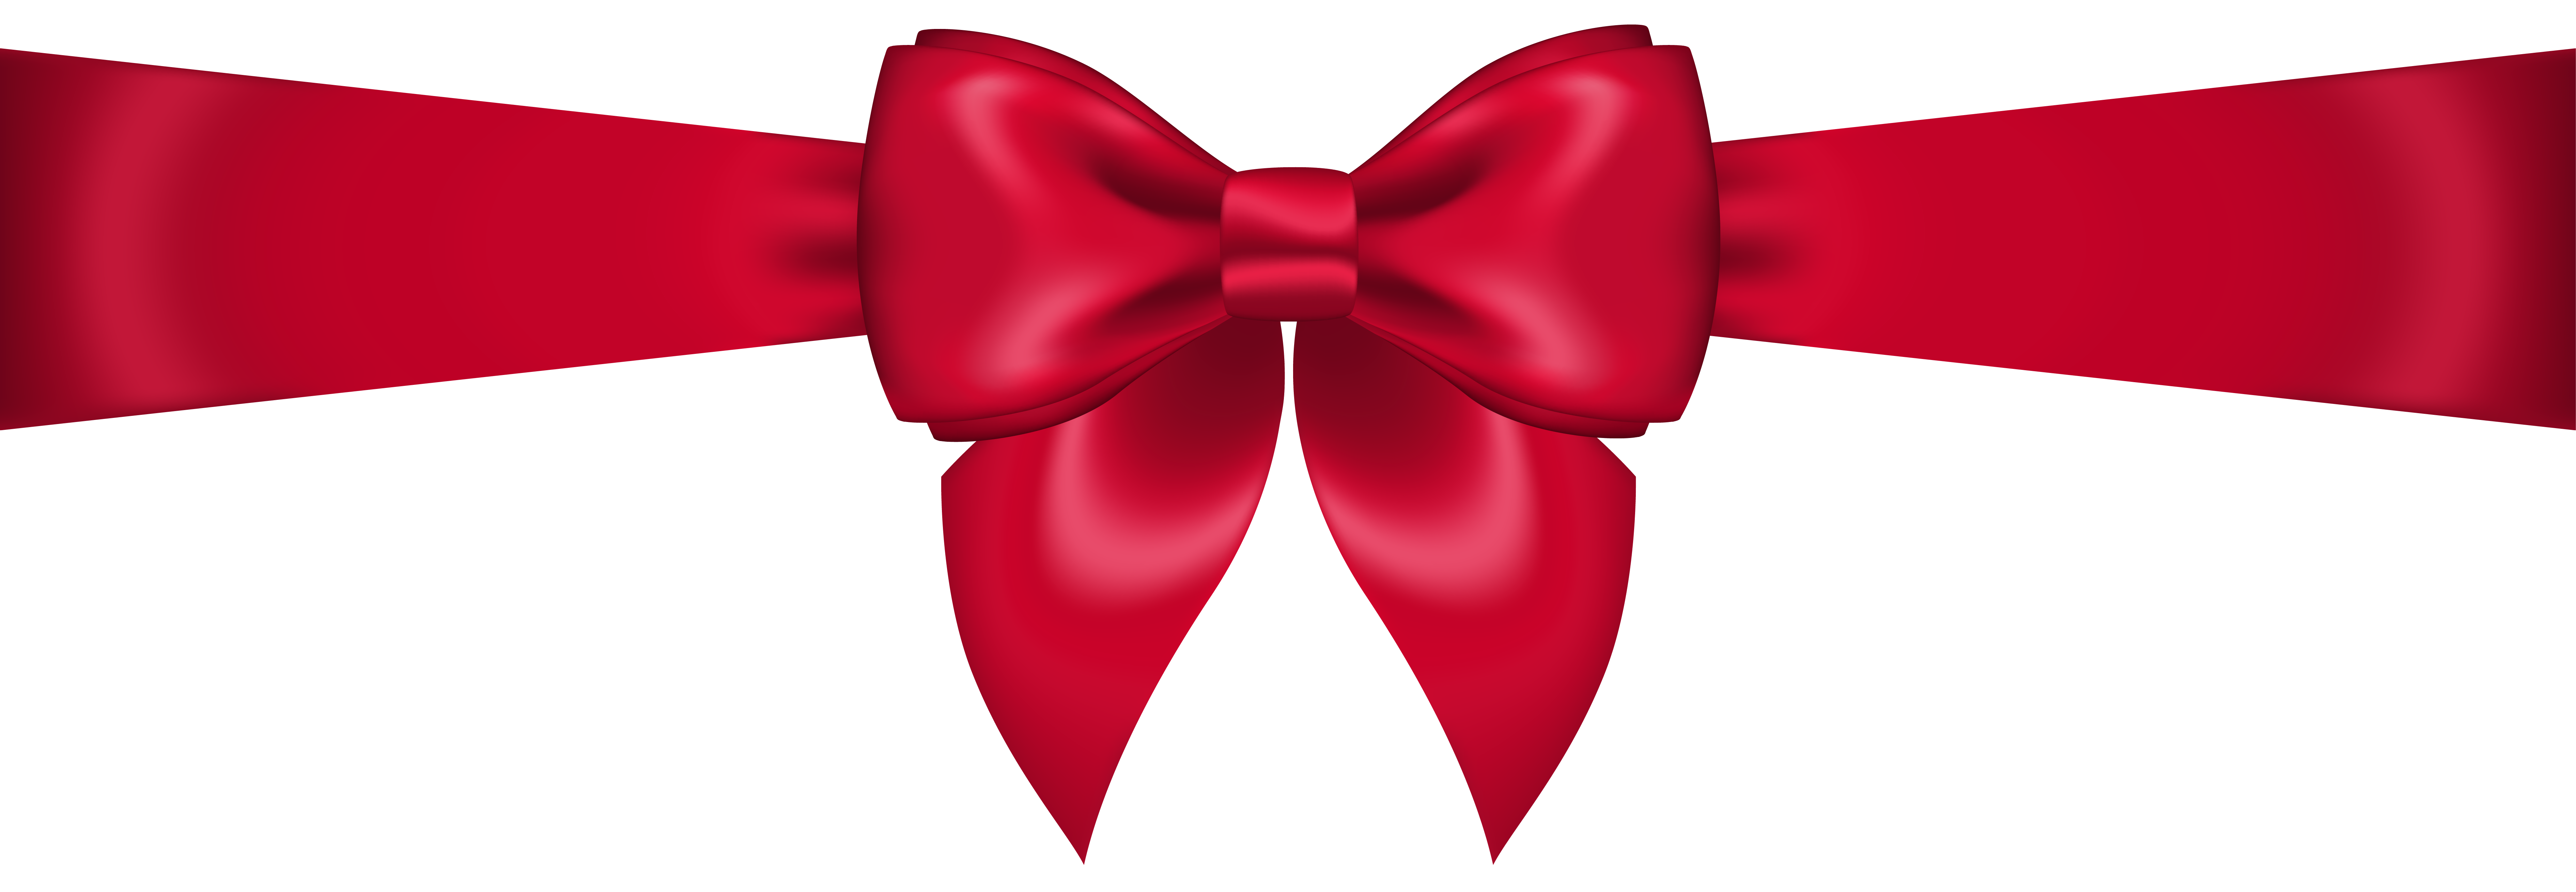 Bow transparent clip art. Red backgrounds png clipart free library